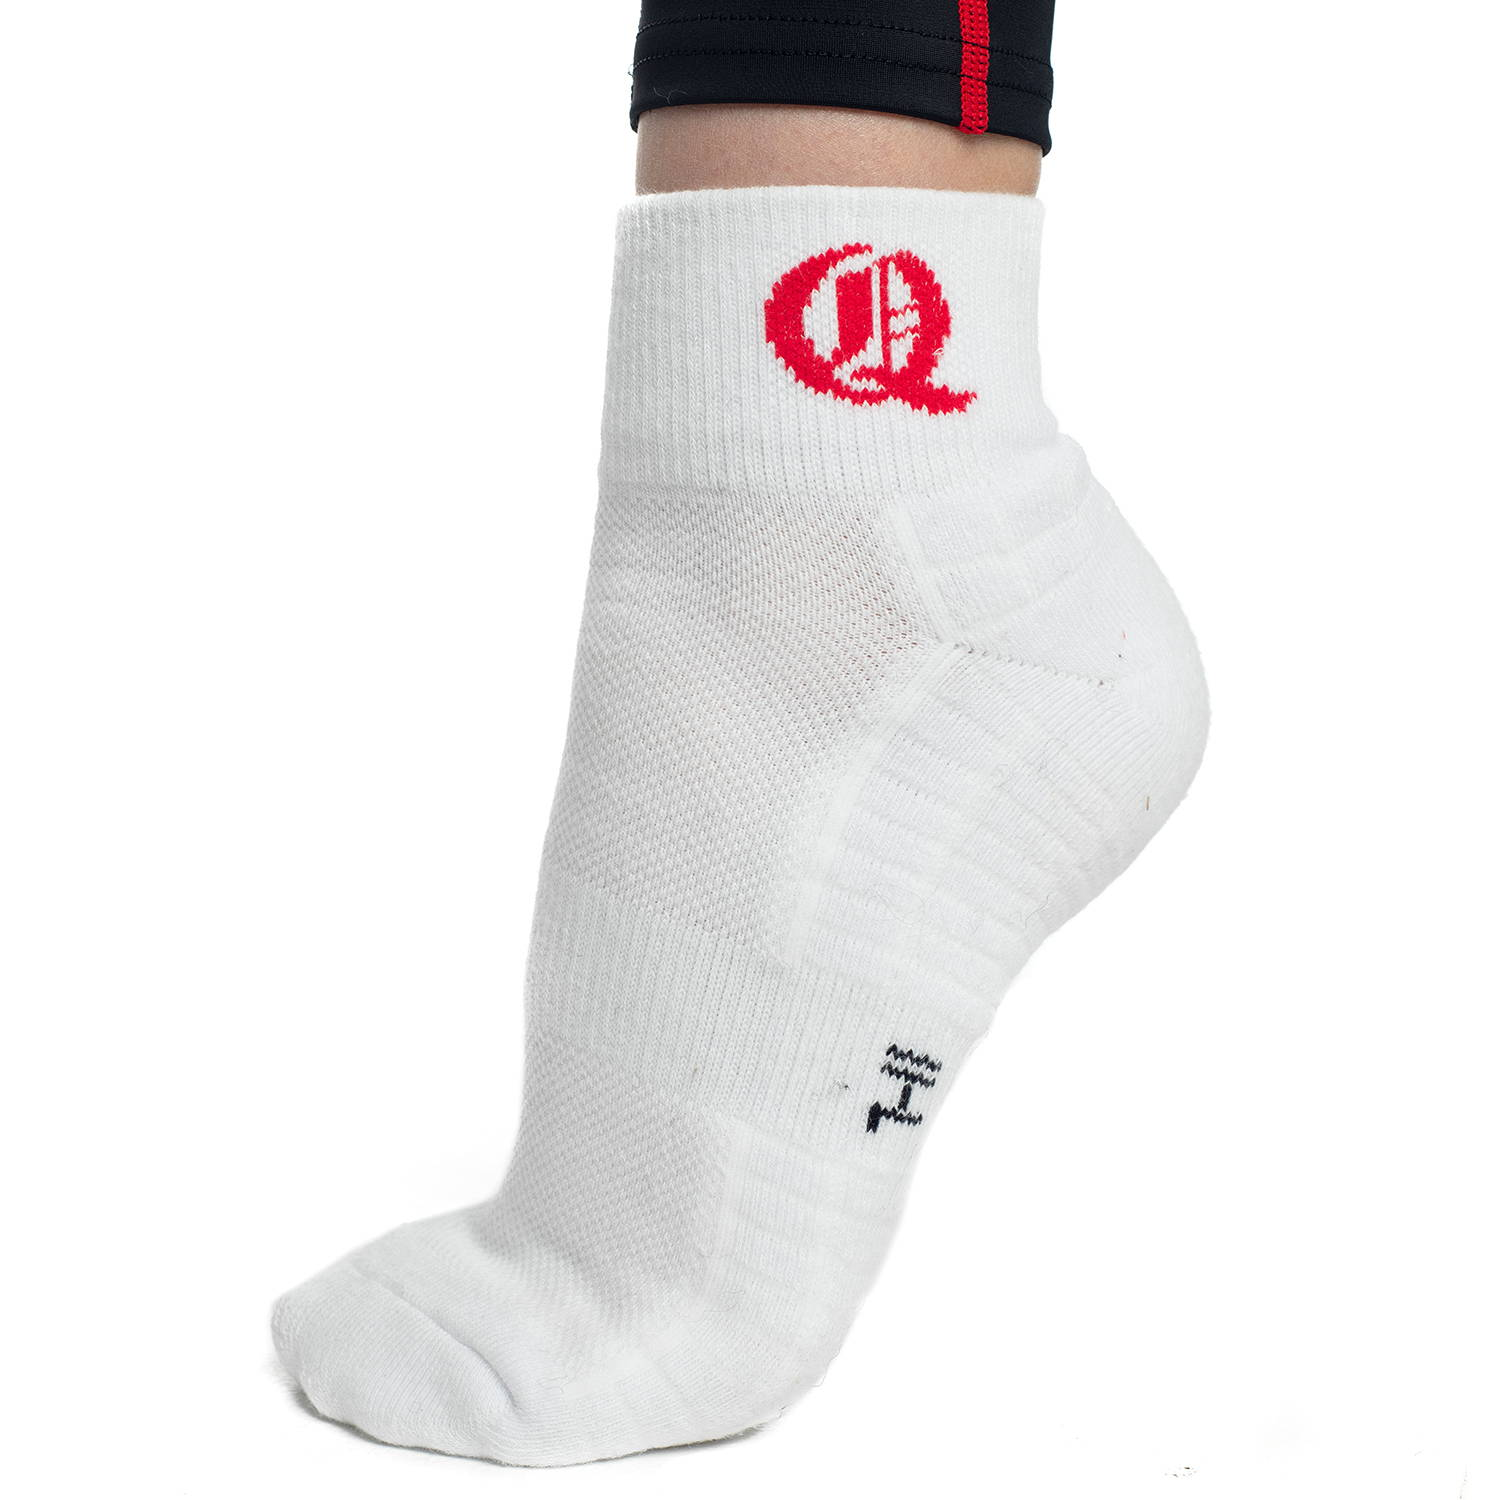 Quarter Sport Socks for Queenwood School